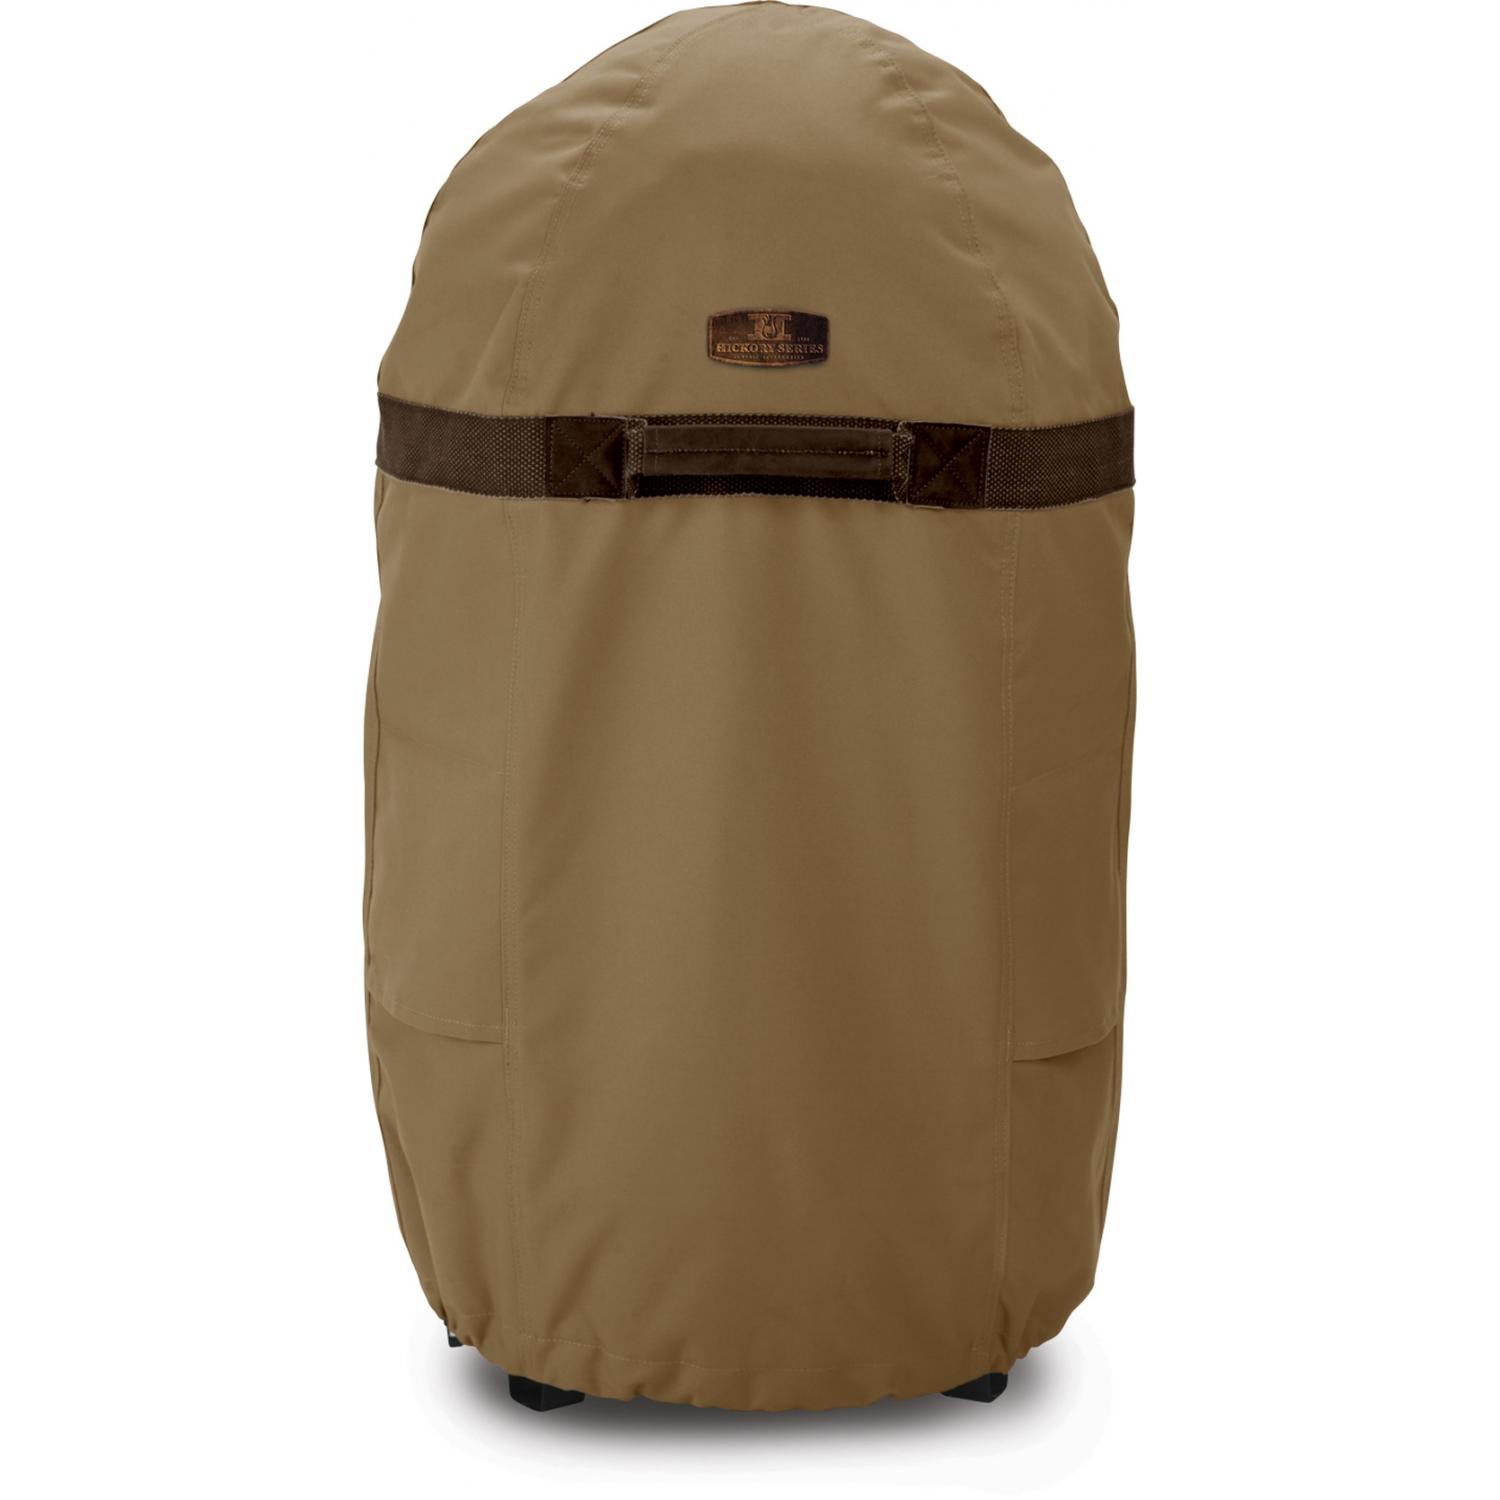 Classic Accessories Hickory Round Fryer/Smoker/Grill Cover - Hickory/Ant. Oak/Mahogany - Large